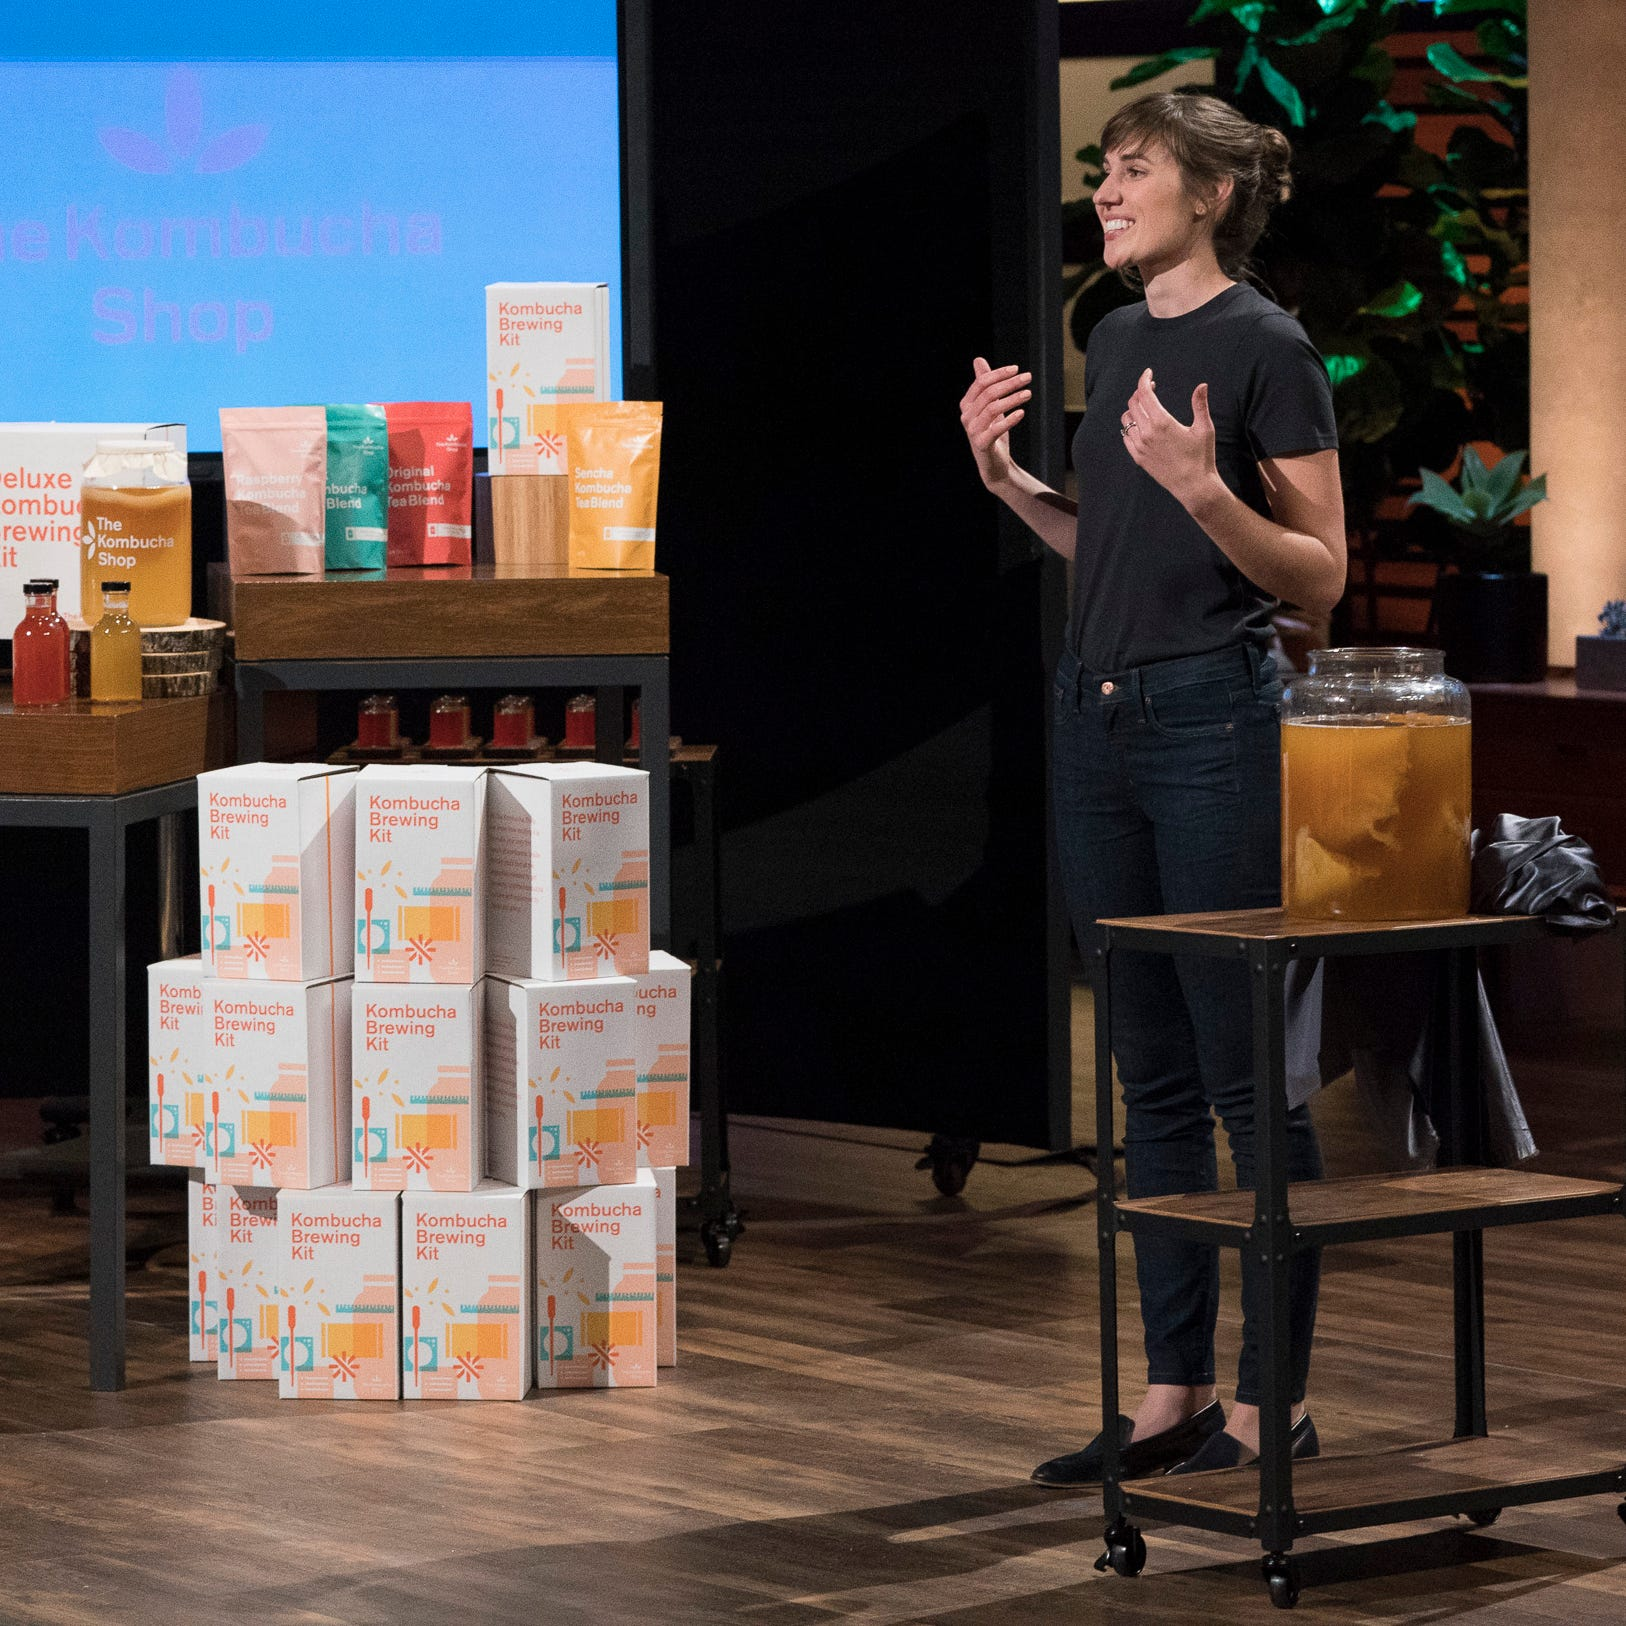 Madison entrepreneur pitches The Kombucha Shop on 'Shark Tank' Sunday